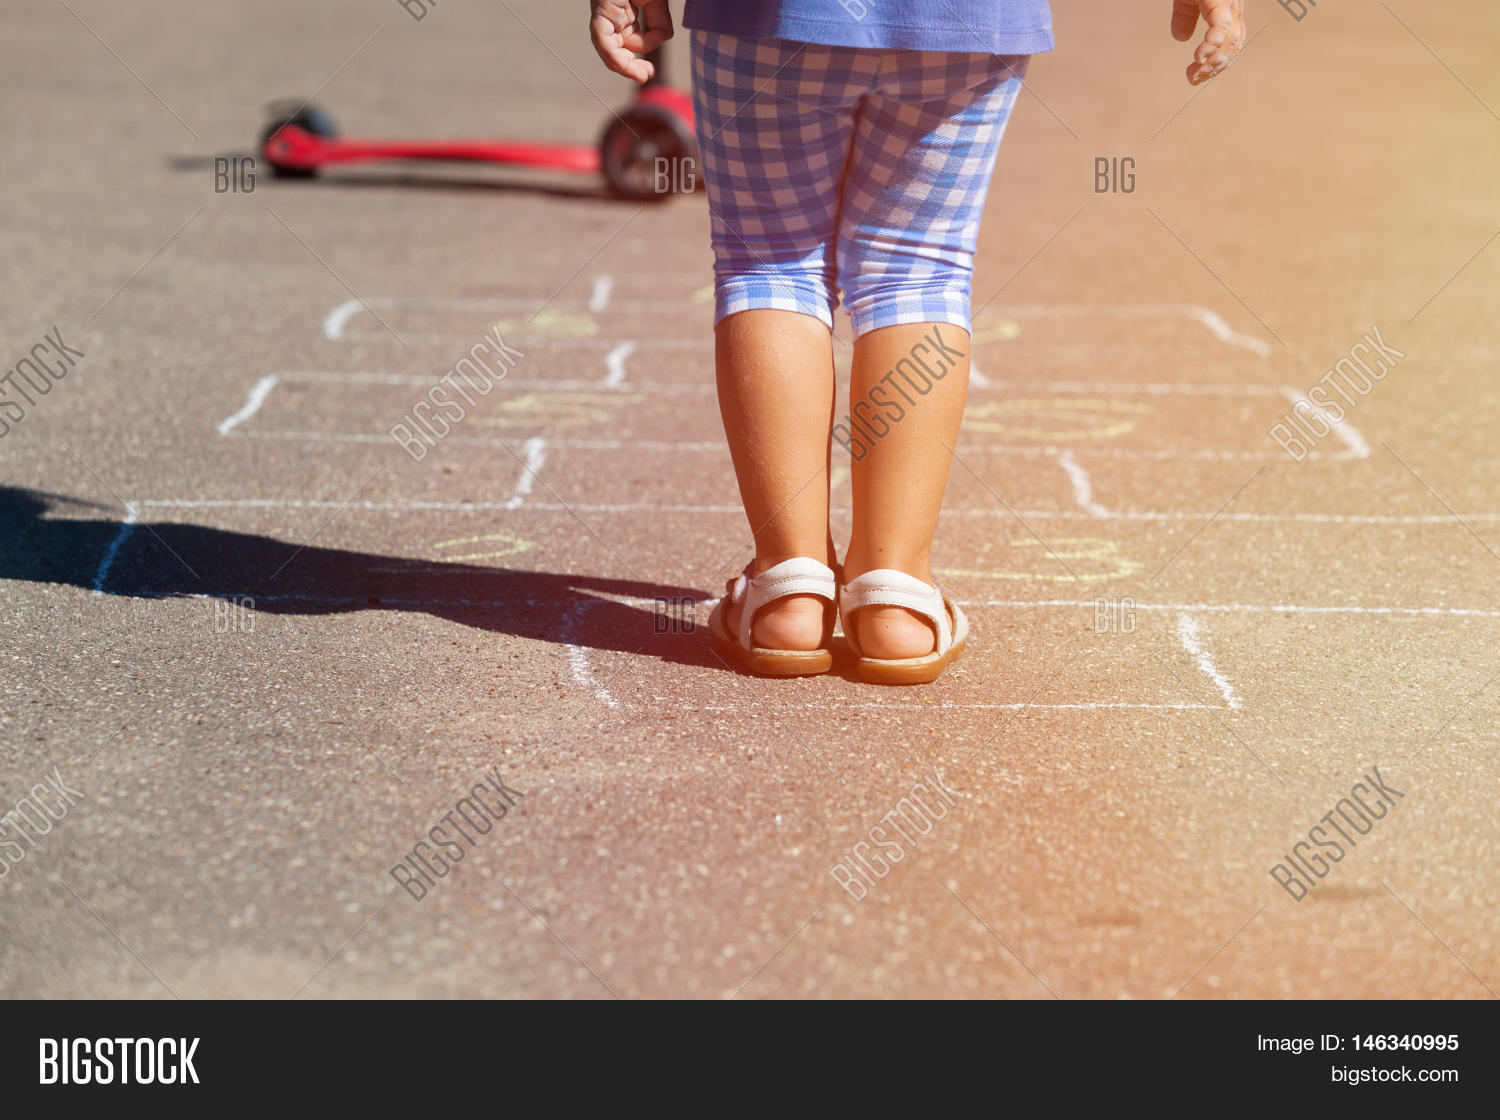 fierce girl playing hopscotch Find the perfect a girl playing hopscotch stock photo huge collection, amazing choice, 100+ million high quality, affordable rf and rm images no need to register, buy now.